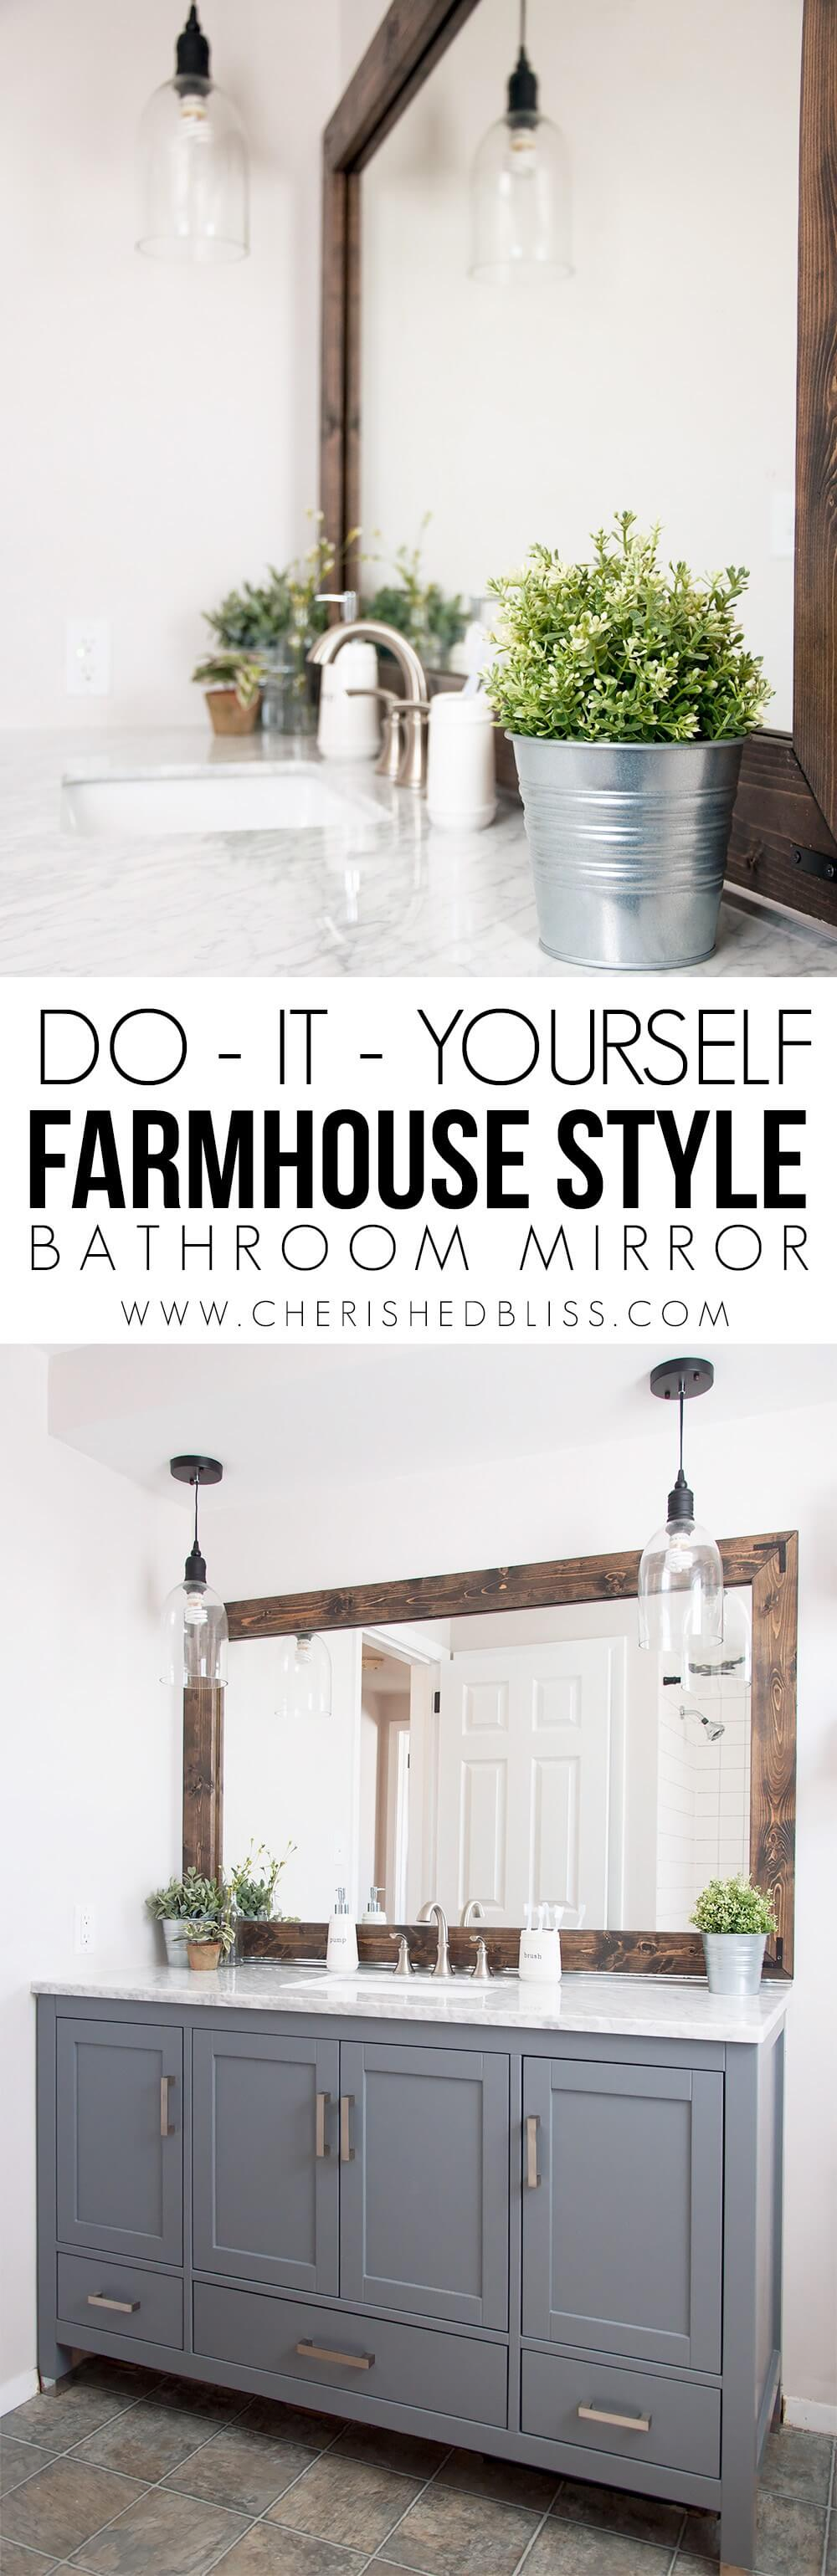 Farmhouse Style Bathroom Mirror